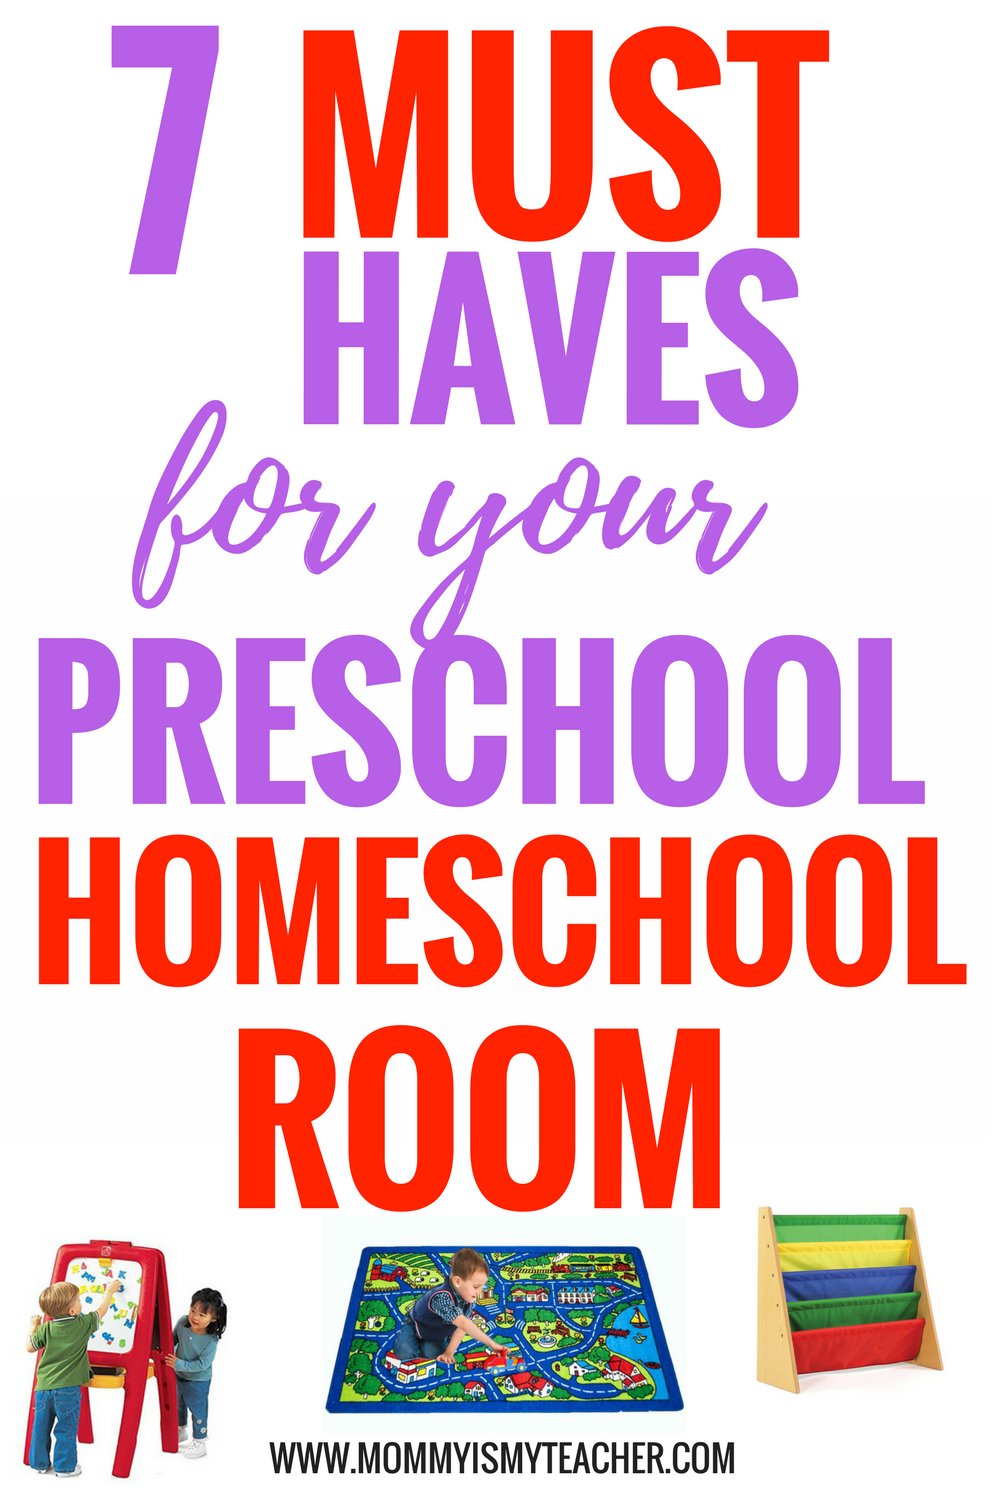 i love these preschool homeschool room ideas. They are great for preschool activities at home in a small space.